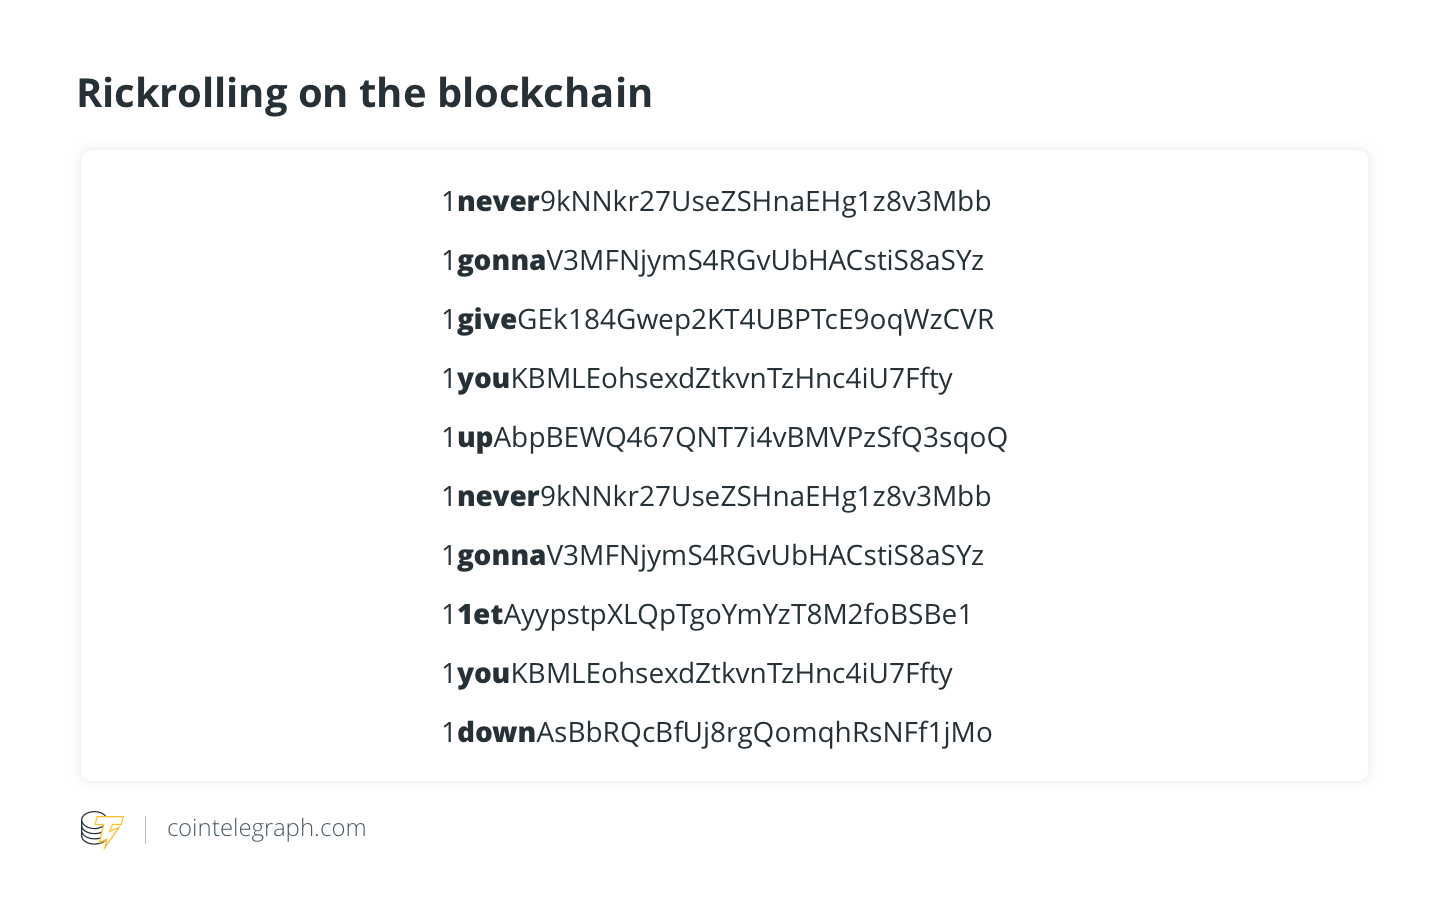 Rickrolling on the blockchain